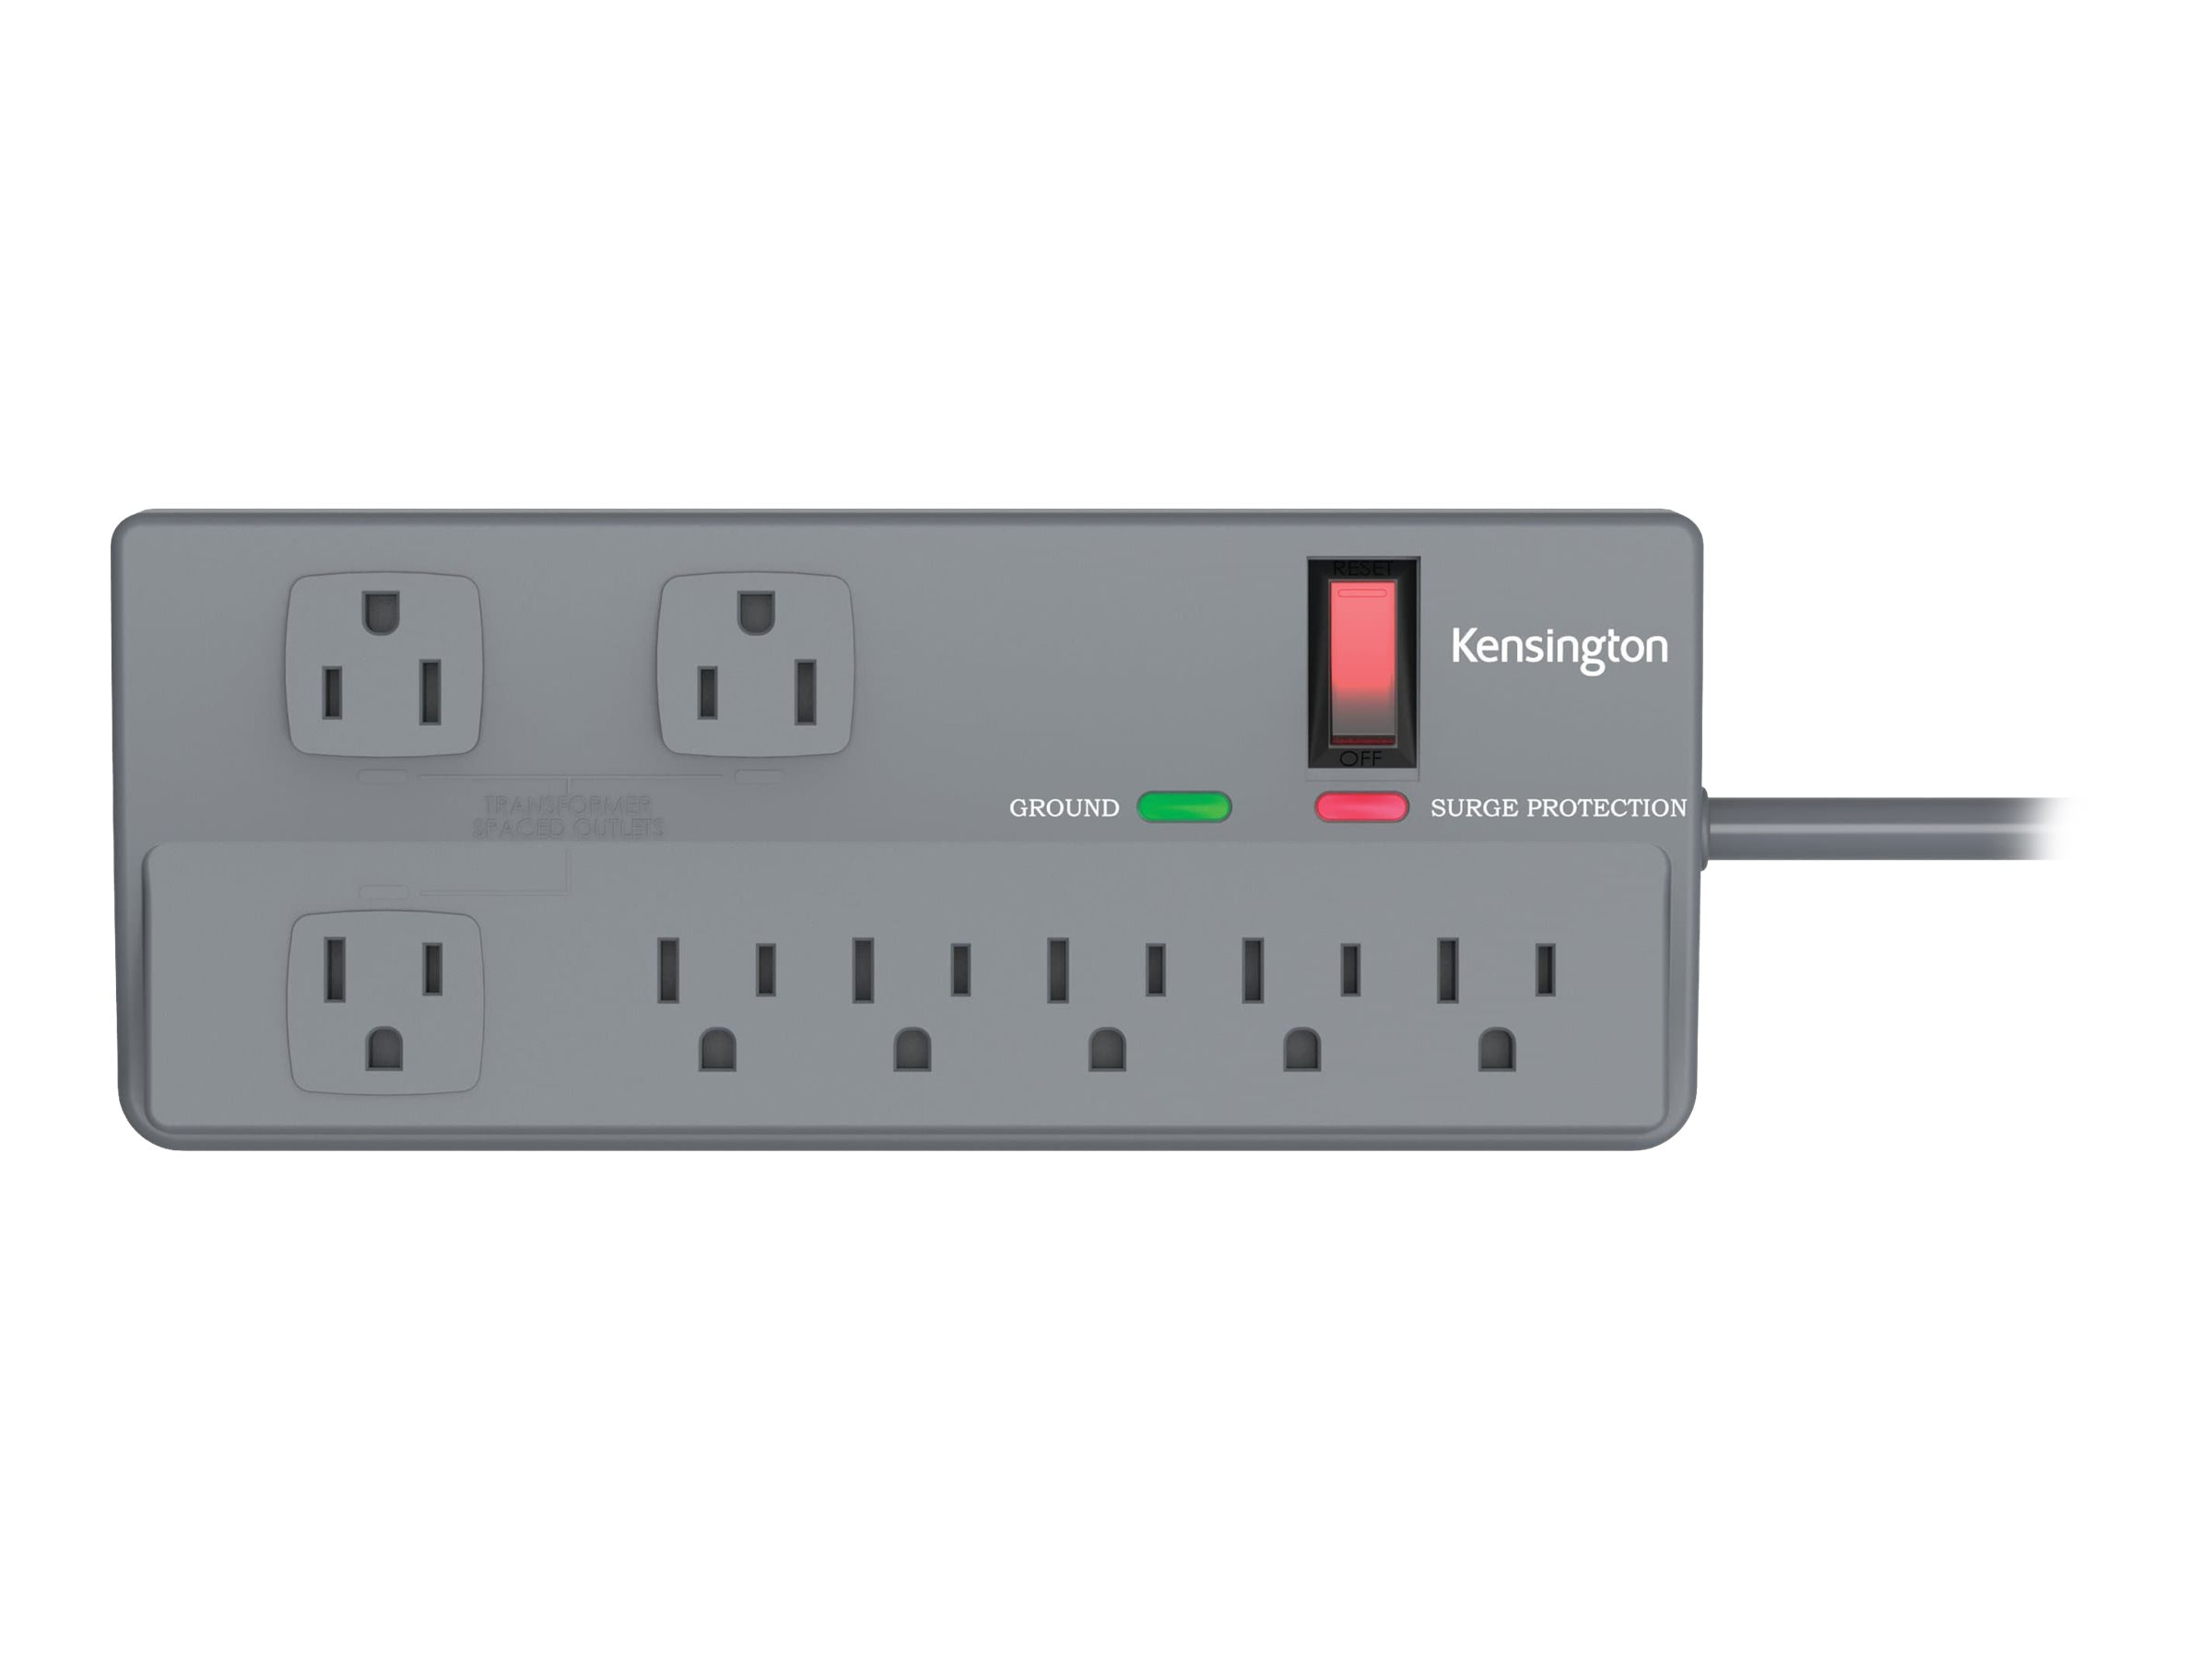 Kensington Guardian Premium Surge Strip, 1080 Joules (8) Outlets 6ft Cord